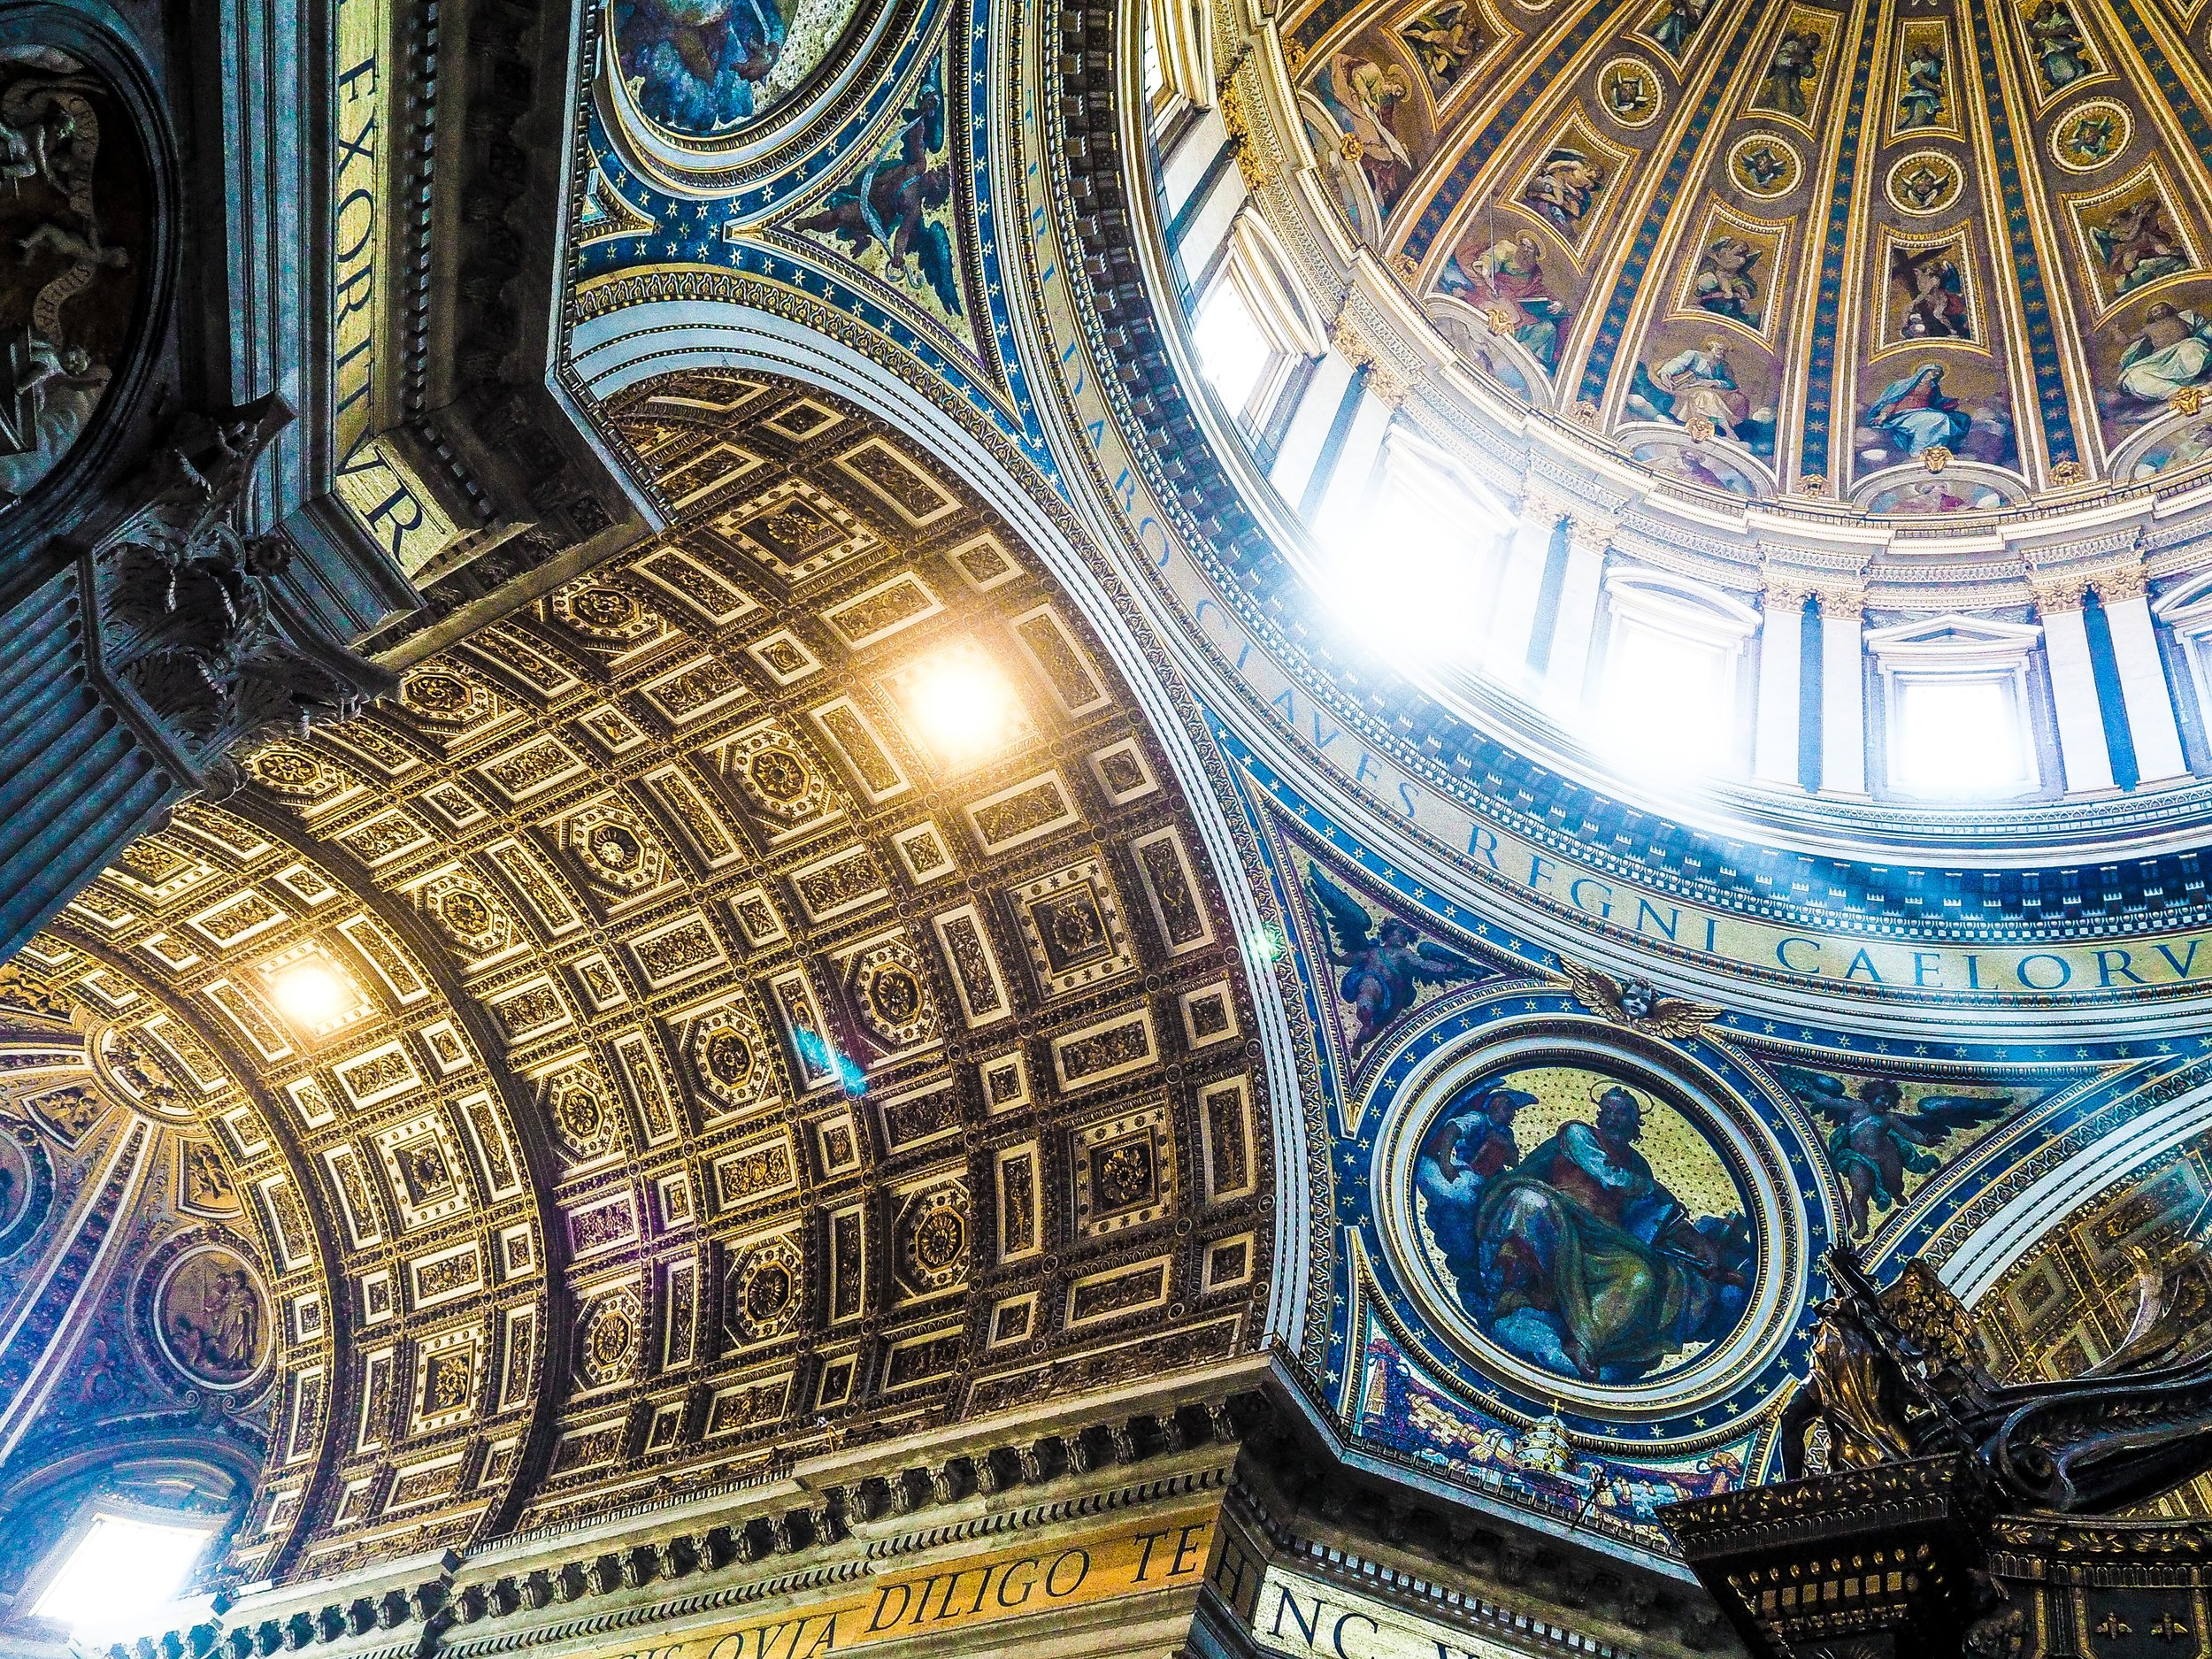 ...stained glass windows and painted masterpieces were read as an open book... -